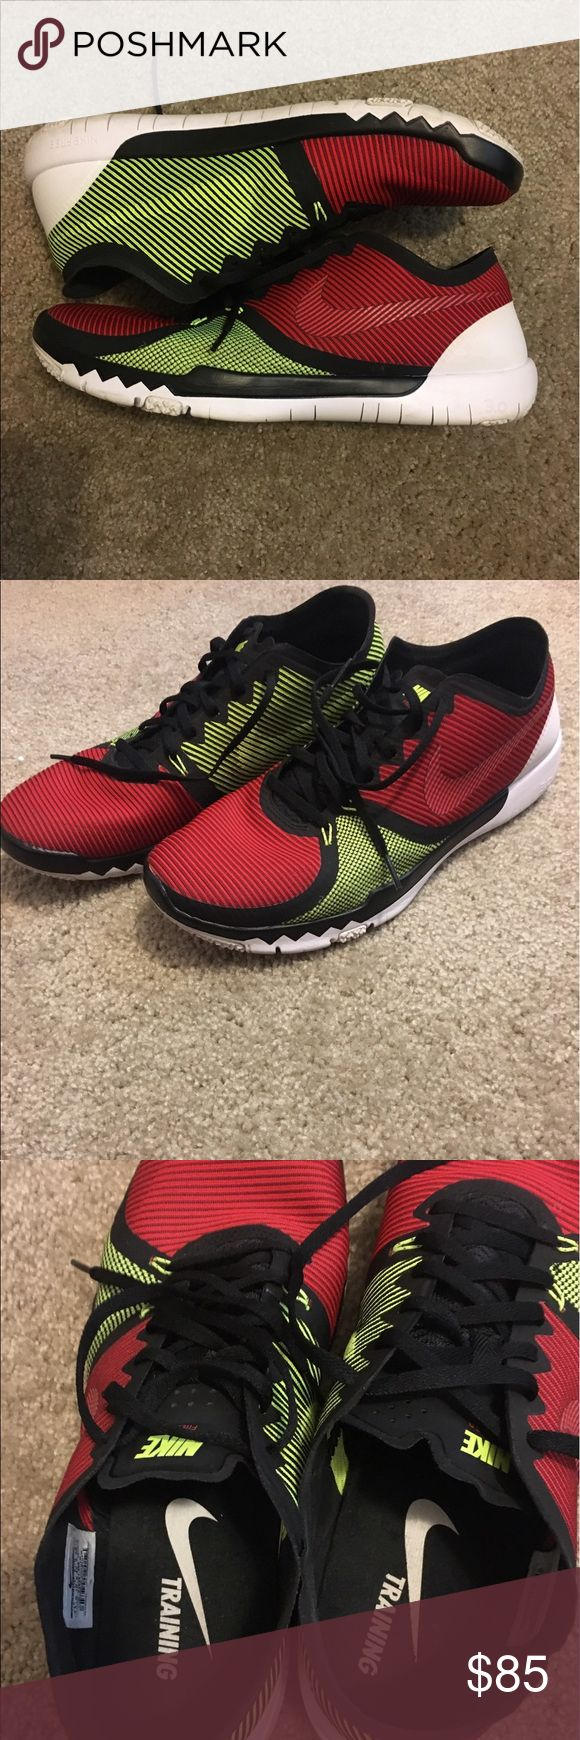 Nike Free Trainer 3.0 V4 In NEW condition with cleanable discoloration where the shoe edges touch the ground. Nike Shoes Athletic Shoes